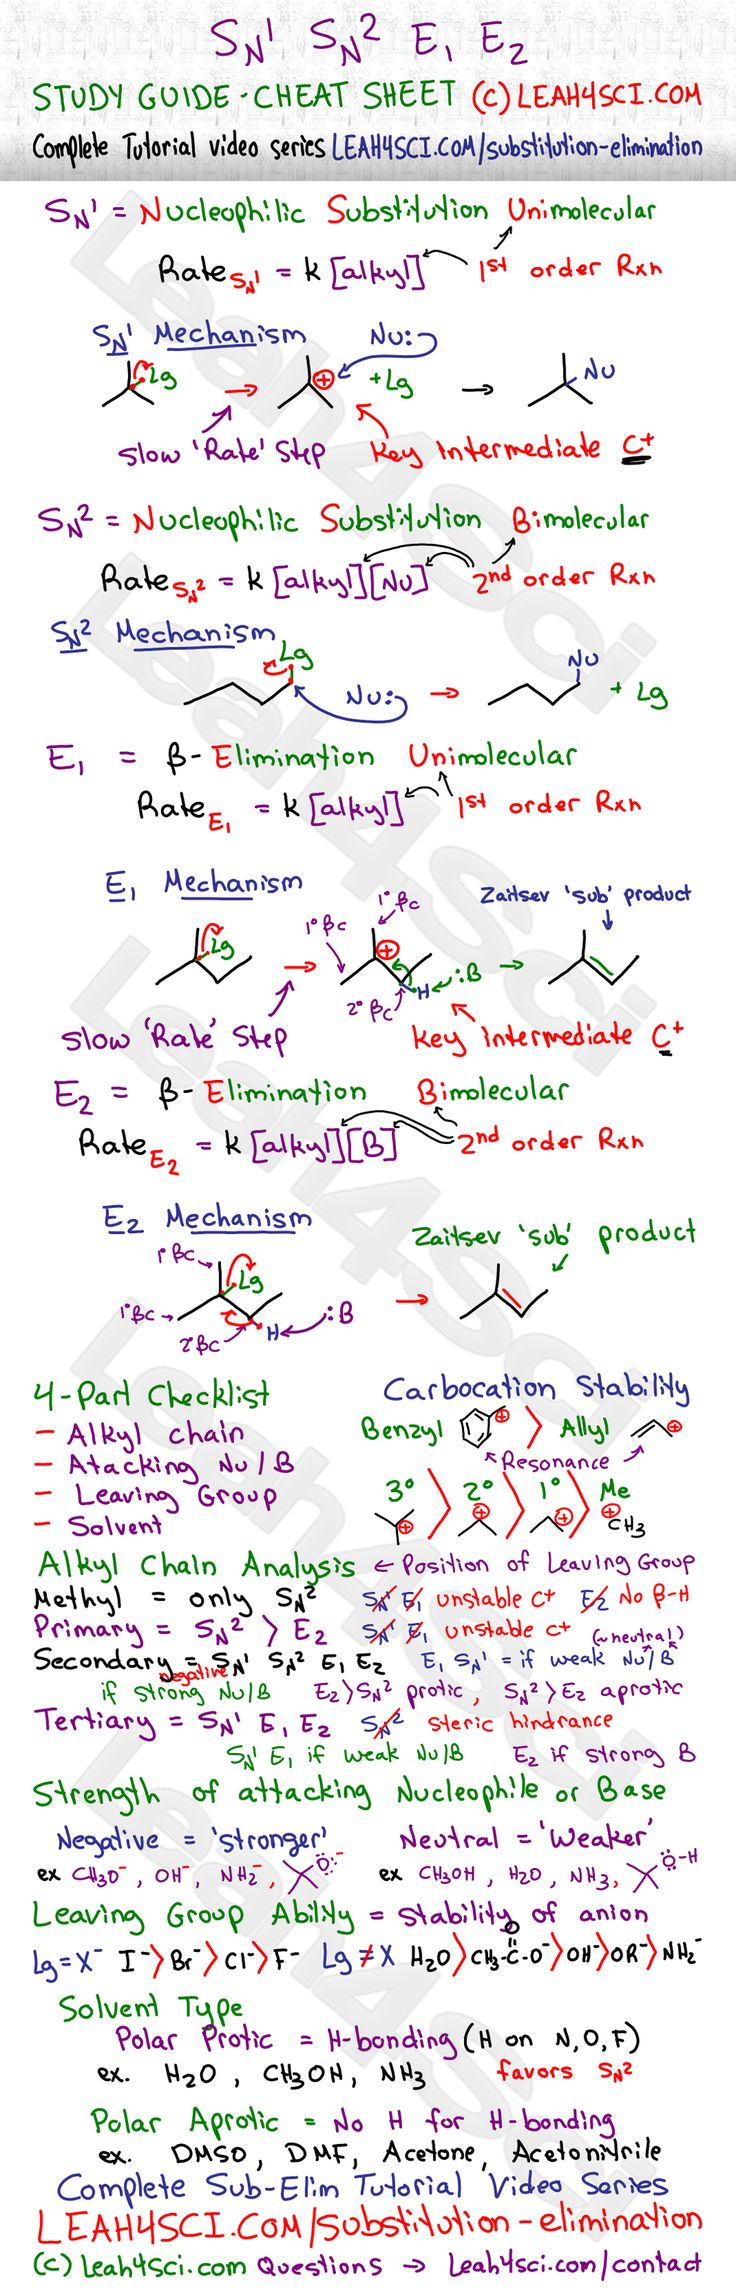 17 best ideas about chemistry help chemistry organic chemistry study guide cheat sheet handy reference for determining between unimolecular and bimolecular substitution and elimination reactions